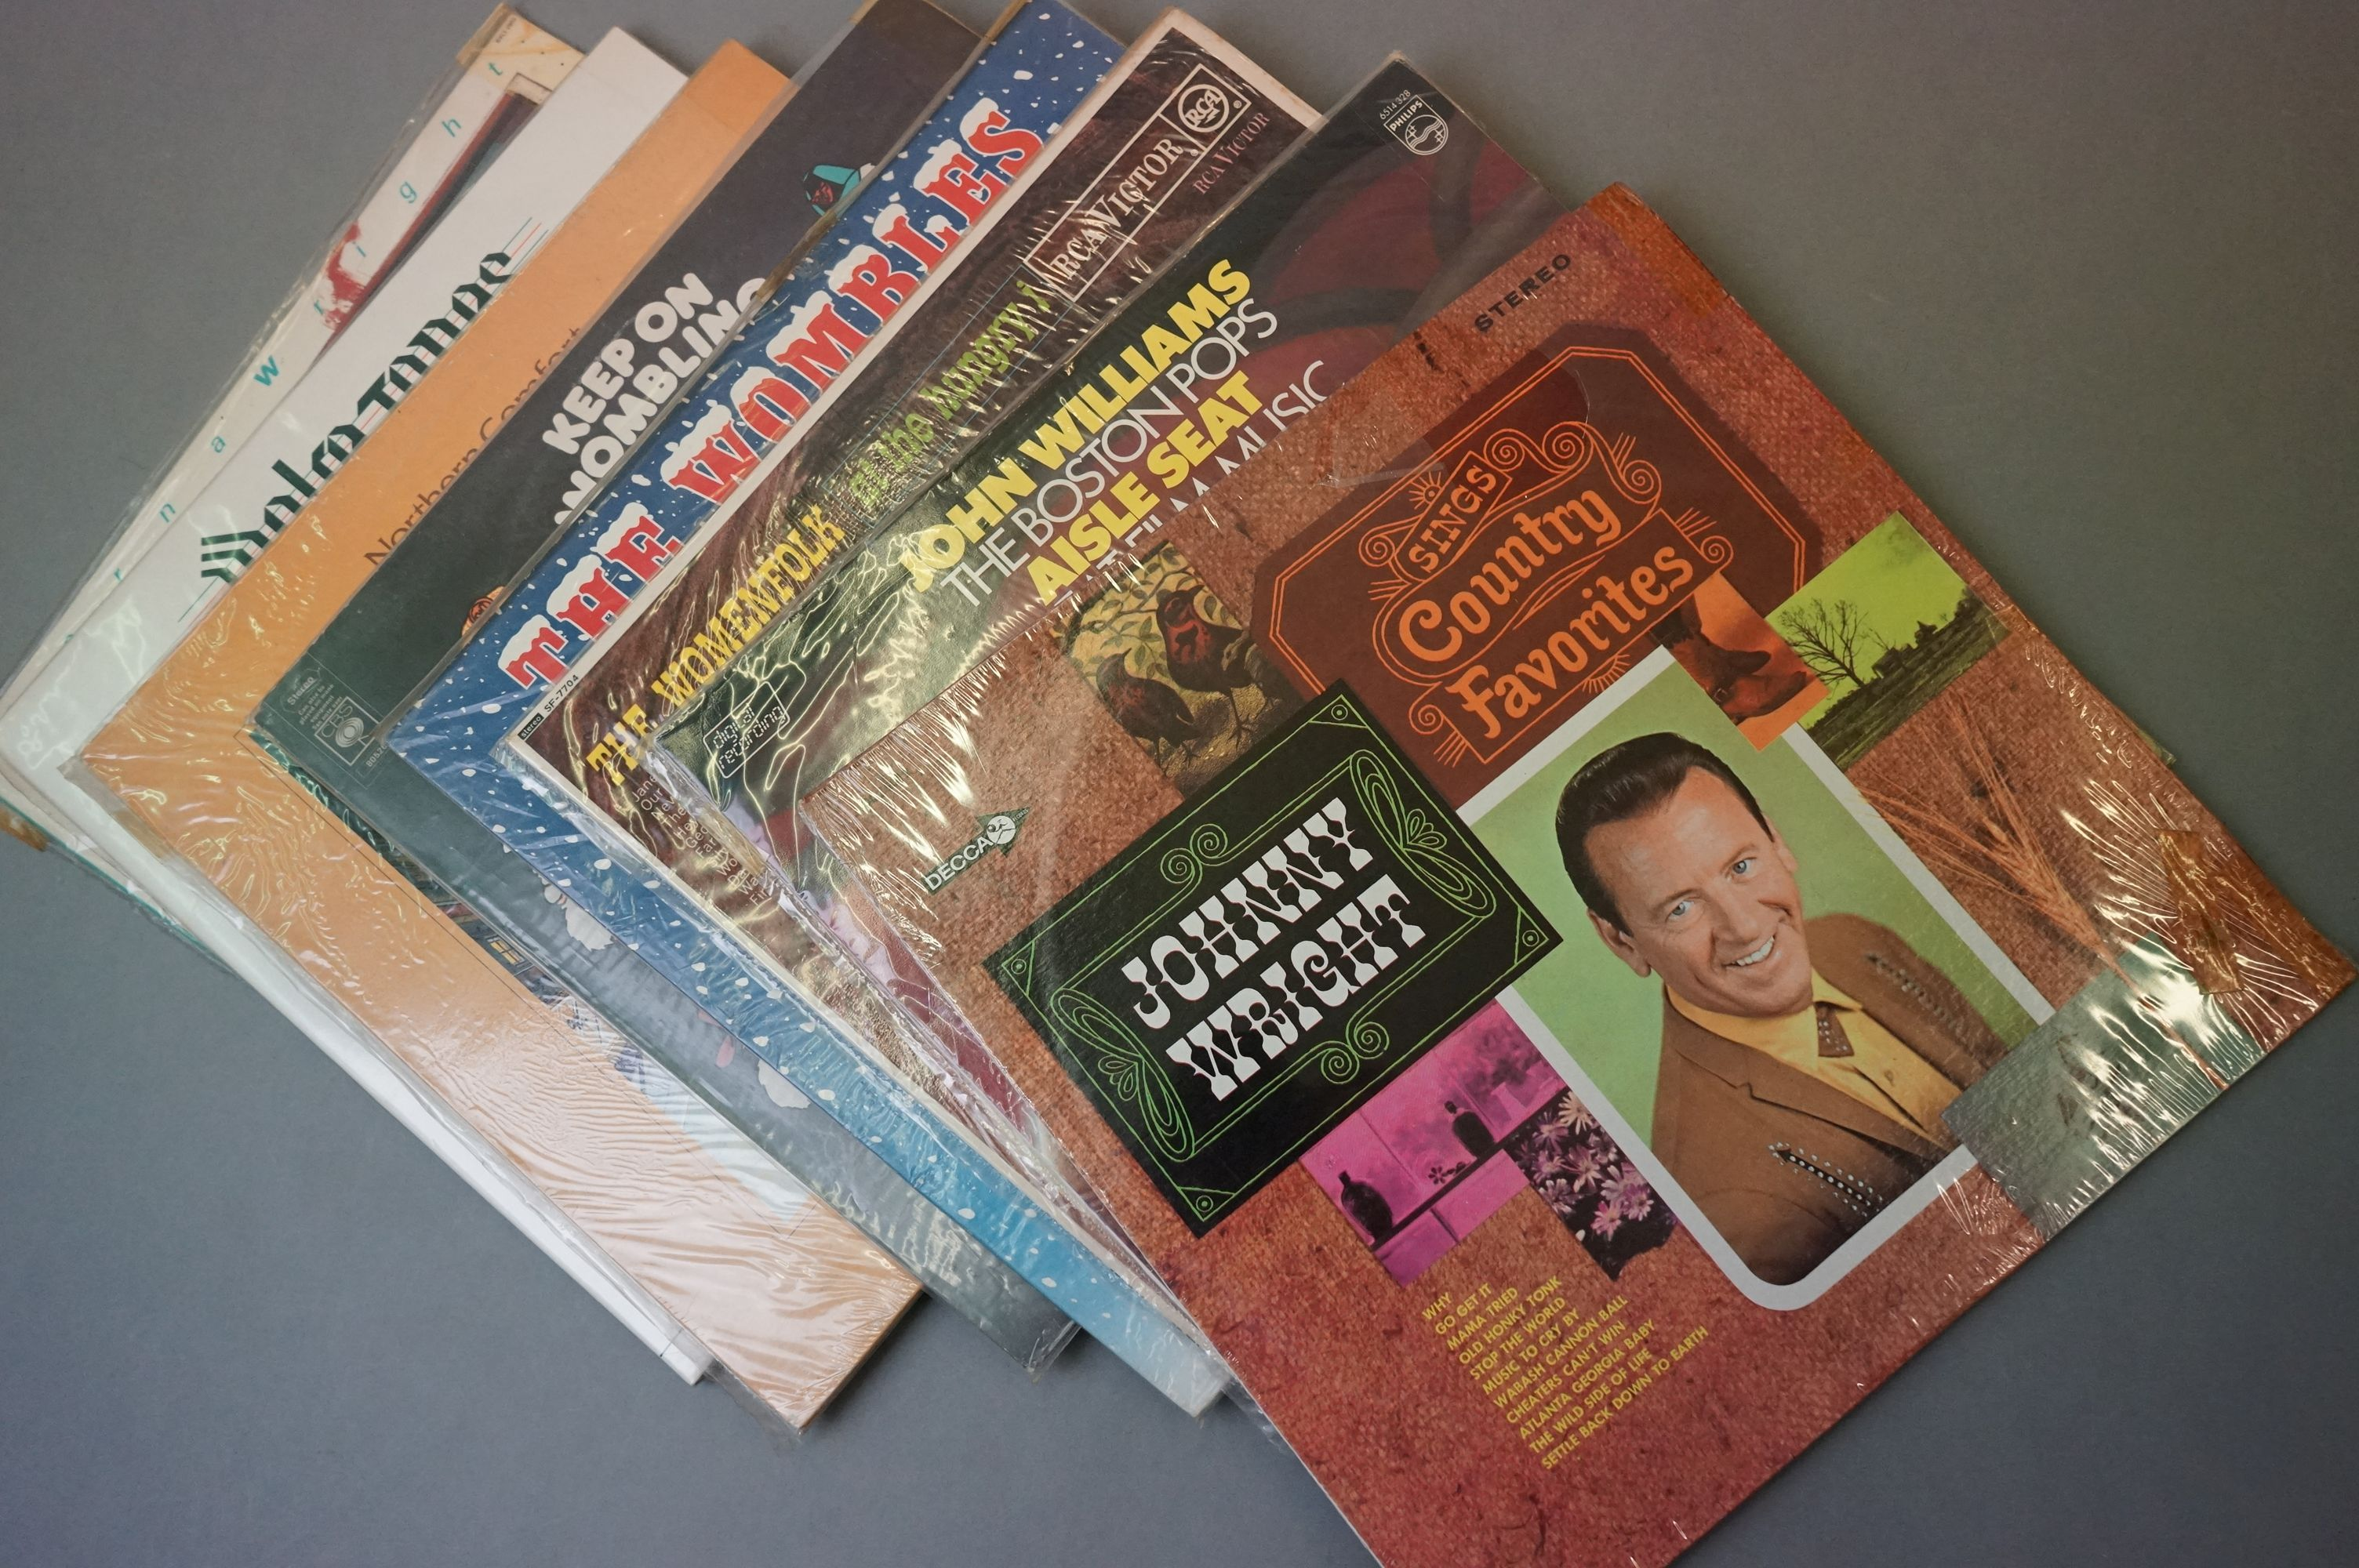 Vinyl - Over 200 LPs to include various genres featuring Link Wray, Tammy Wynette, Decca Digital, - Image 3 of 3